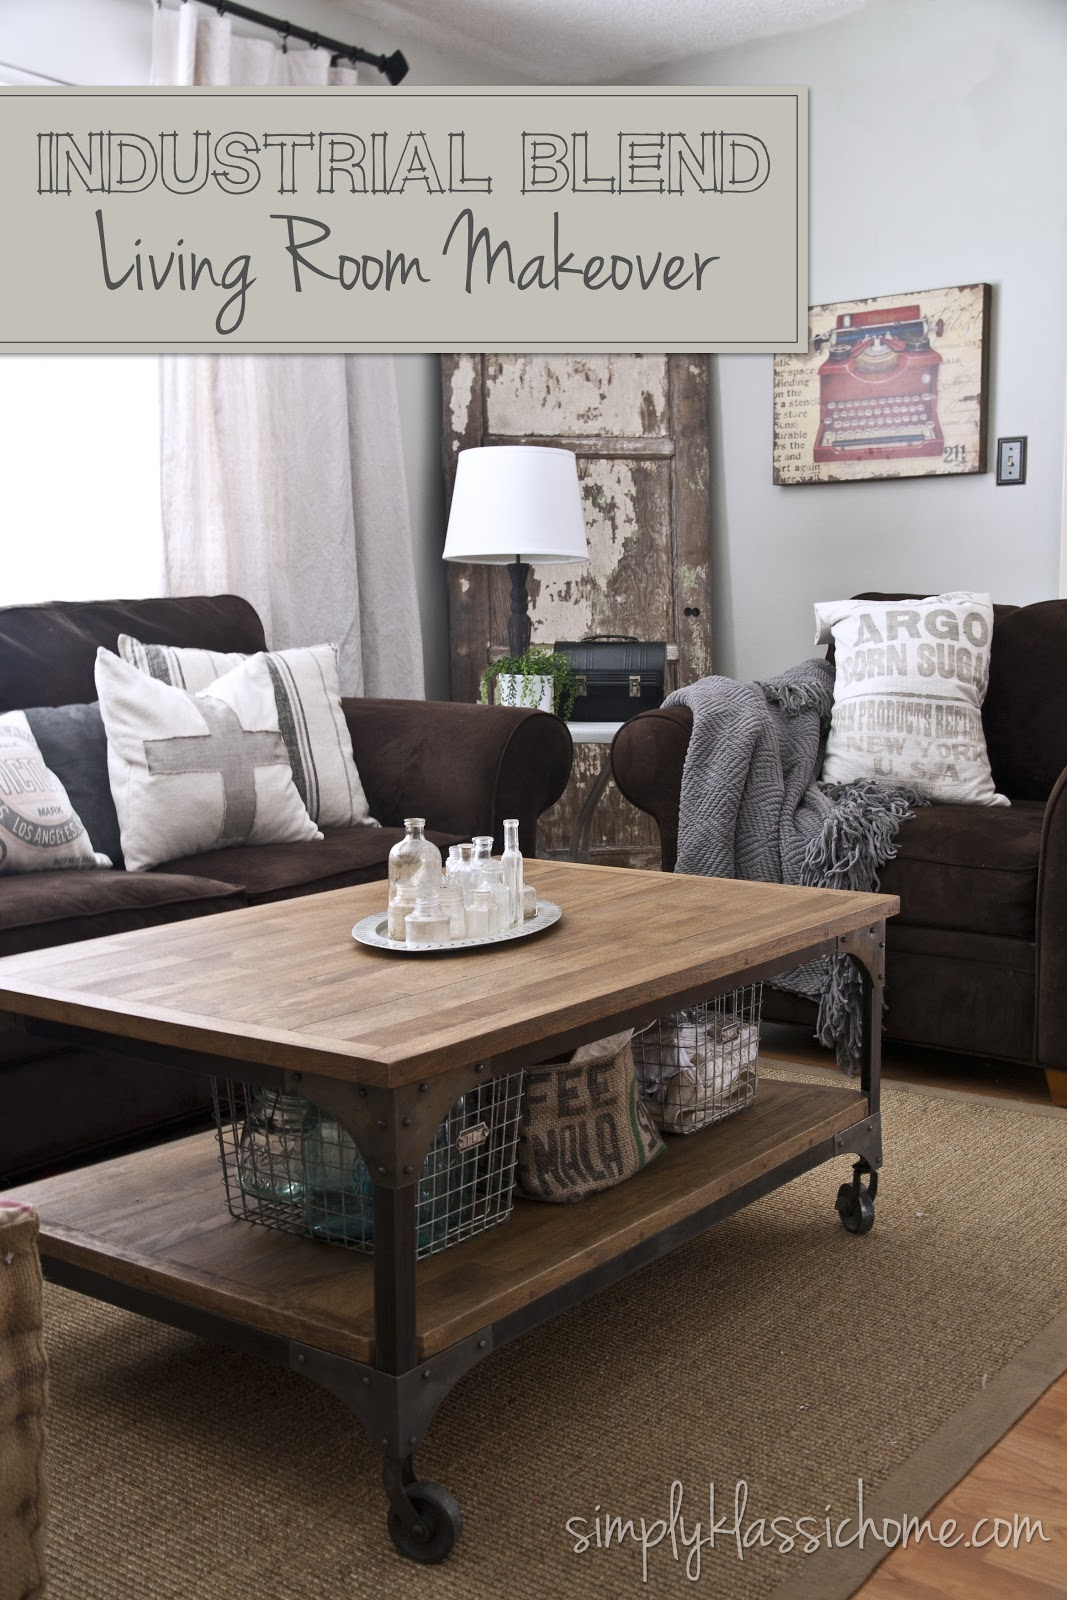 Industrial blend living room makeover reveal yellow for Living room ideas with brown couch